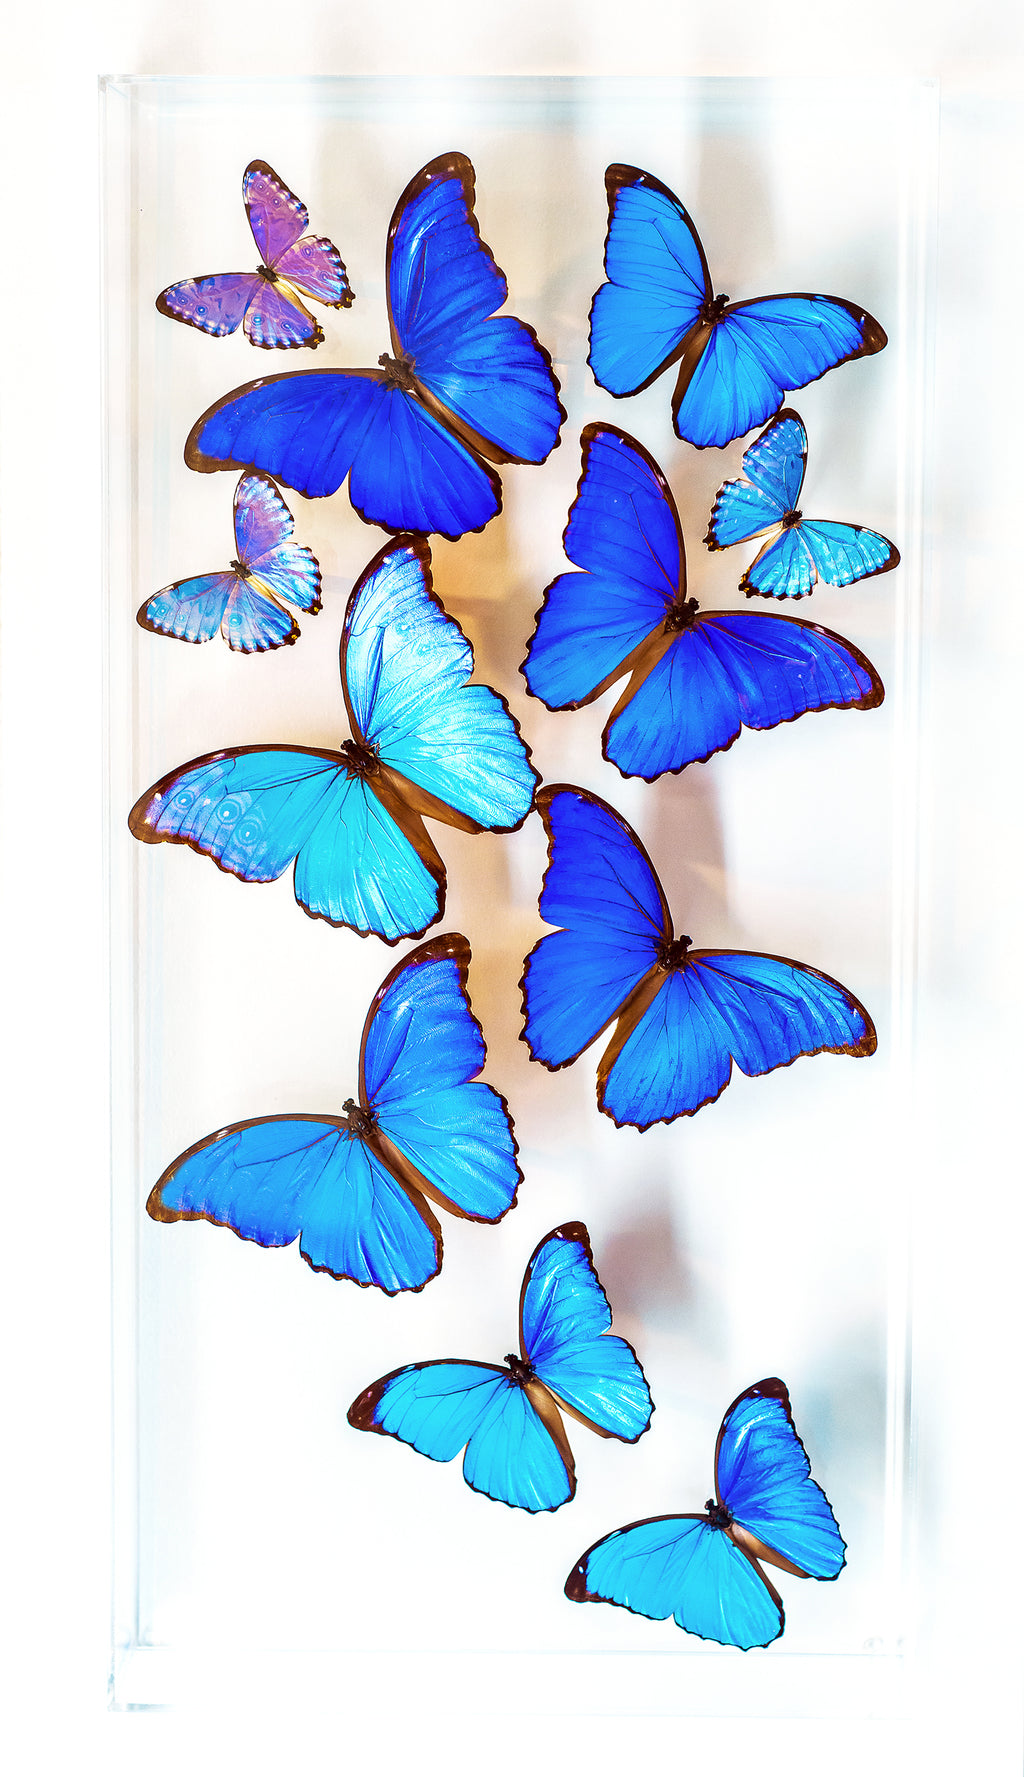 "12"" x 24"" exotic butterfly display - 1224MPDM - Regular price 795.00"